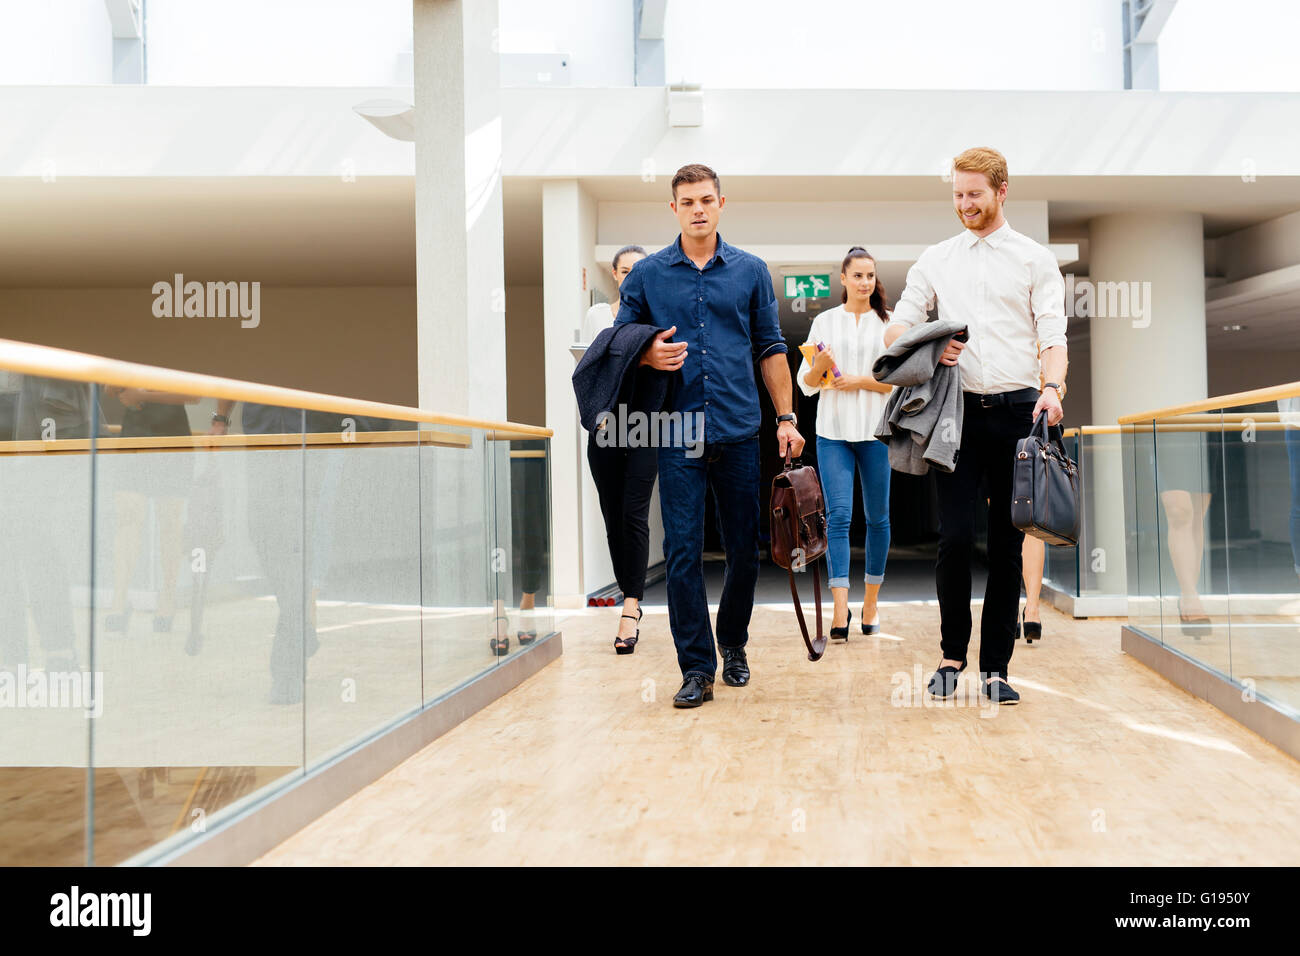 Business in motion, walking business people - Stock Image